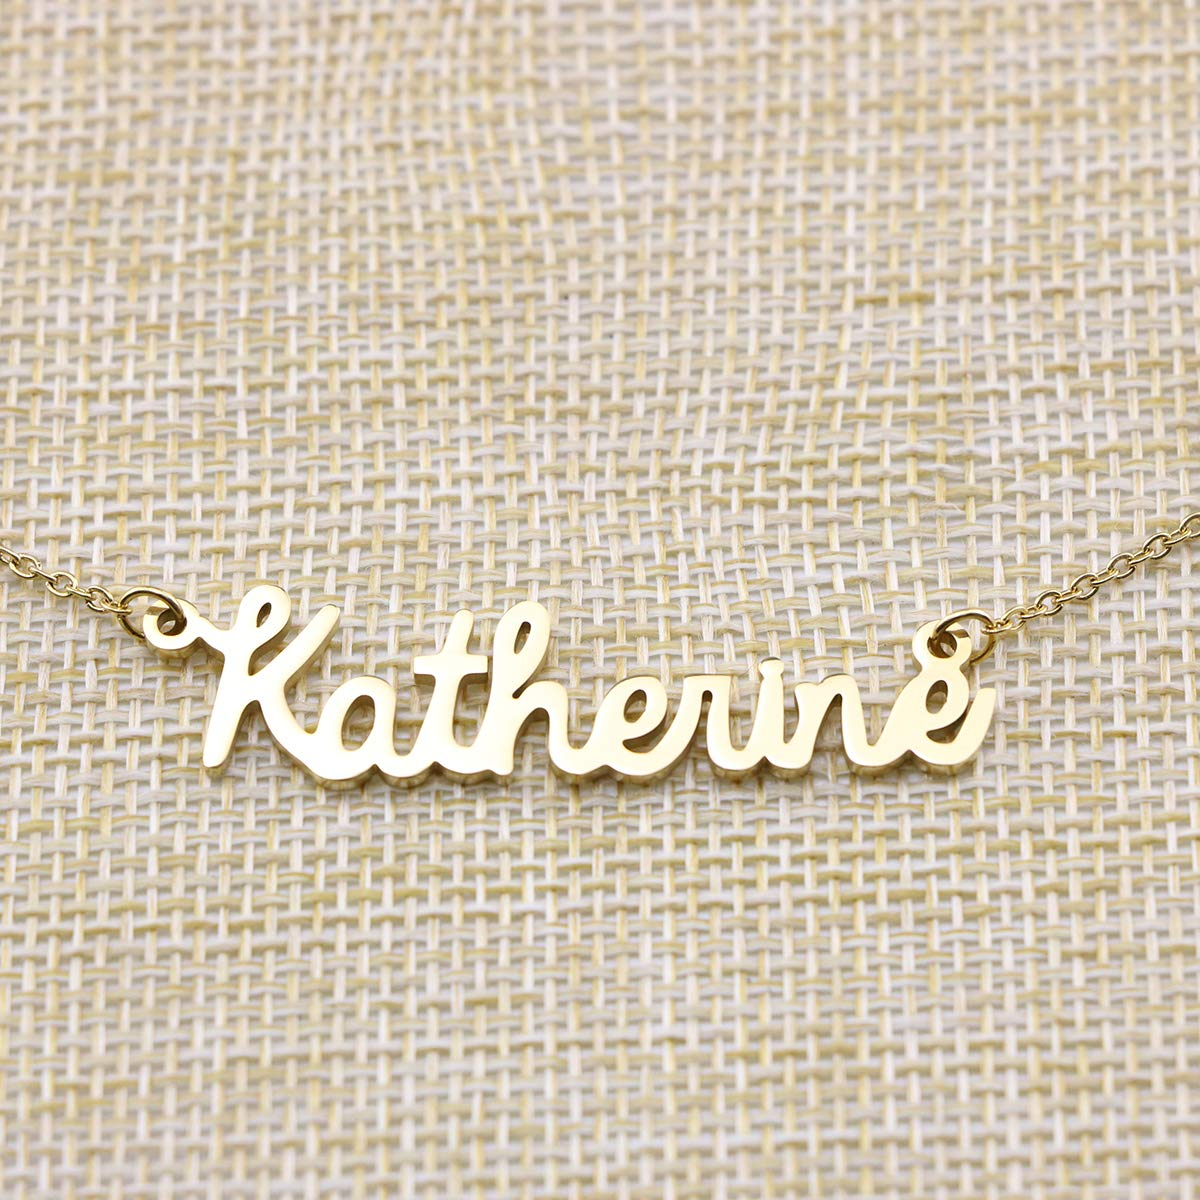 50b7a1ee6 Yiyang Personalized Name Necklace 18K Gold Plated Stainless Steel Pendant  Jewelry Birthday Gift for Girls YN